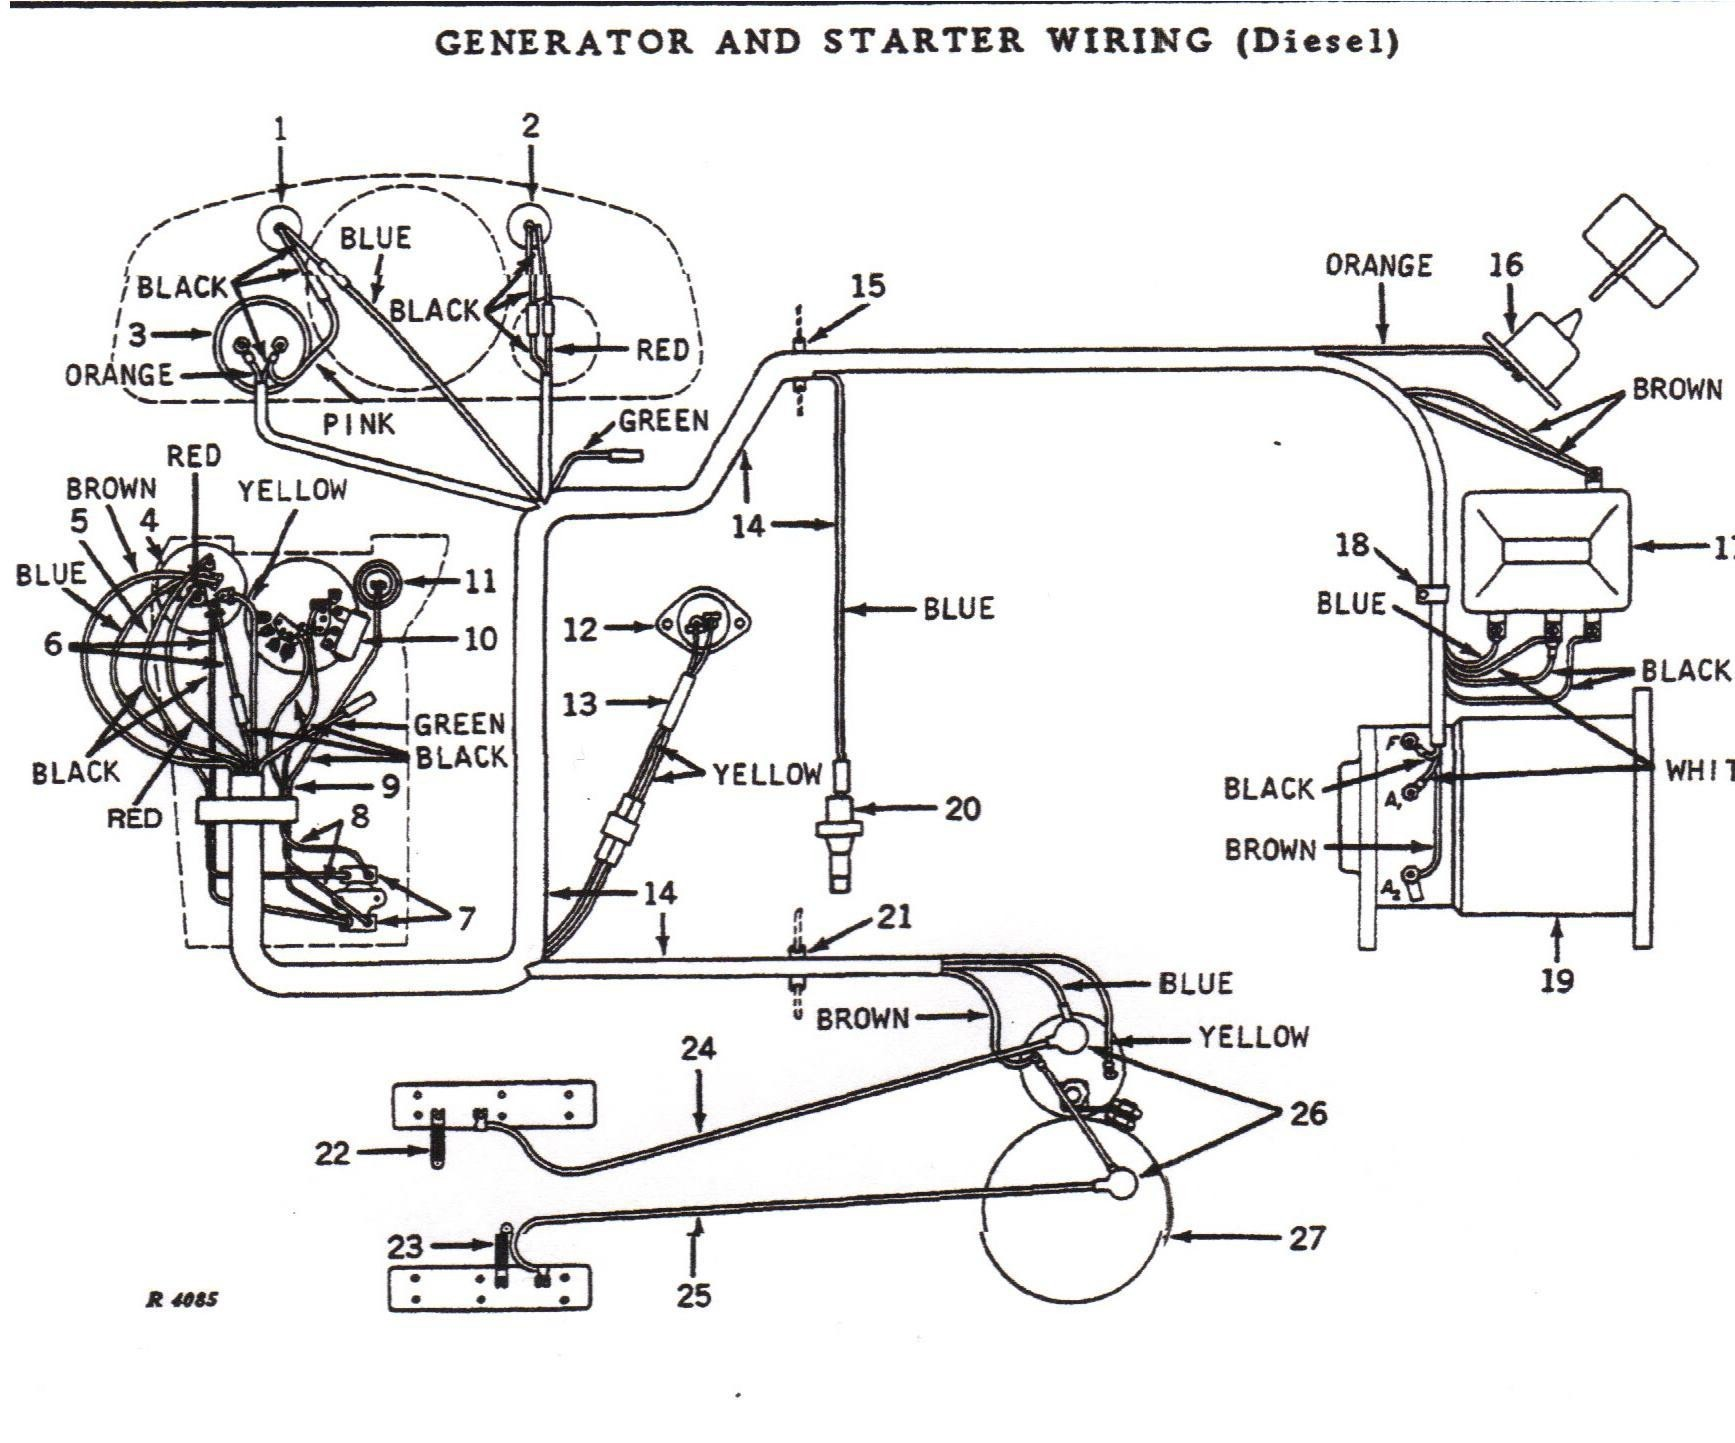 John Deere 165 Wiring Diagram - Wiring Diagrams Hidden on